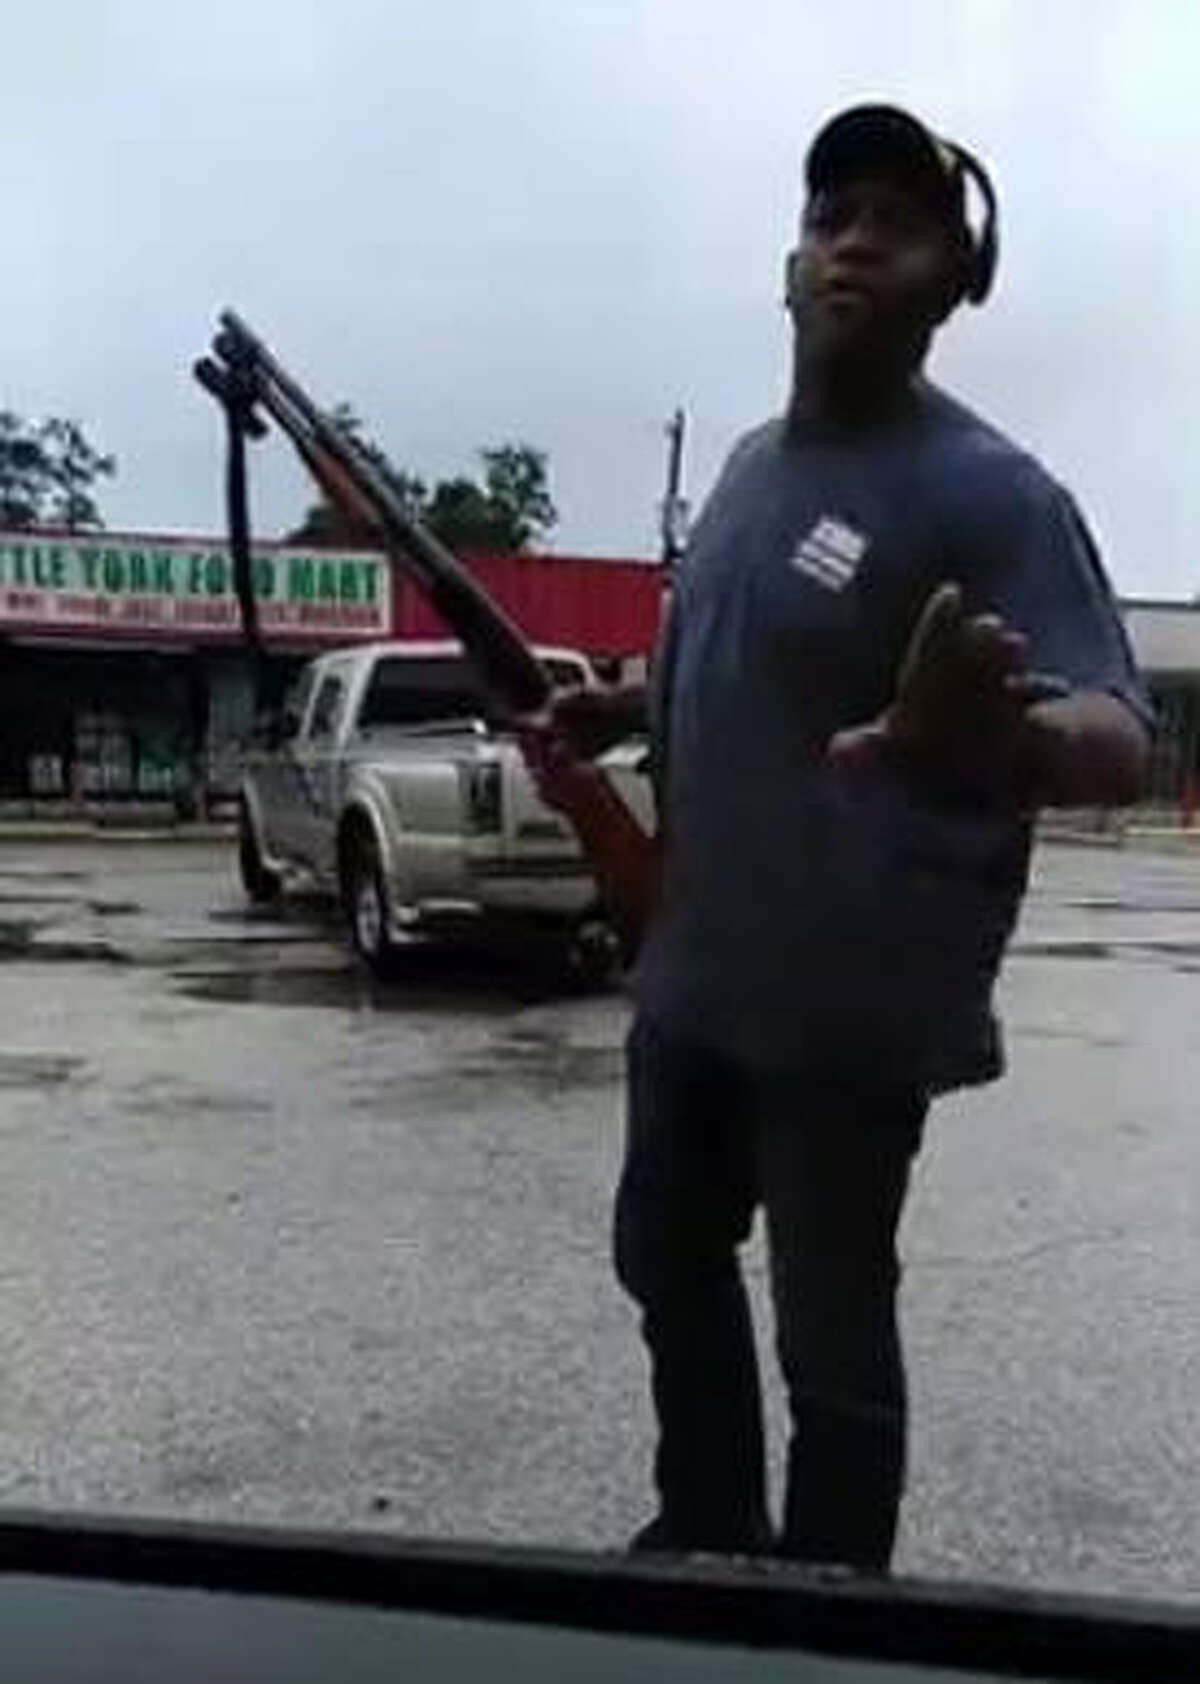 Nash John of Houston has become viral after a Facebook video showed him fighting off would-be looters from a Little York Food Mart in North Harris County with a shotgun on Aug. 8, 2017.